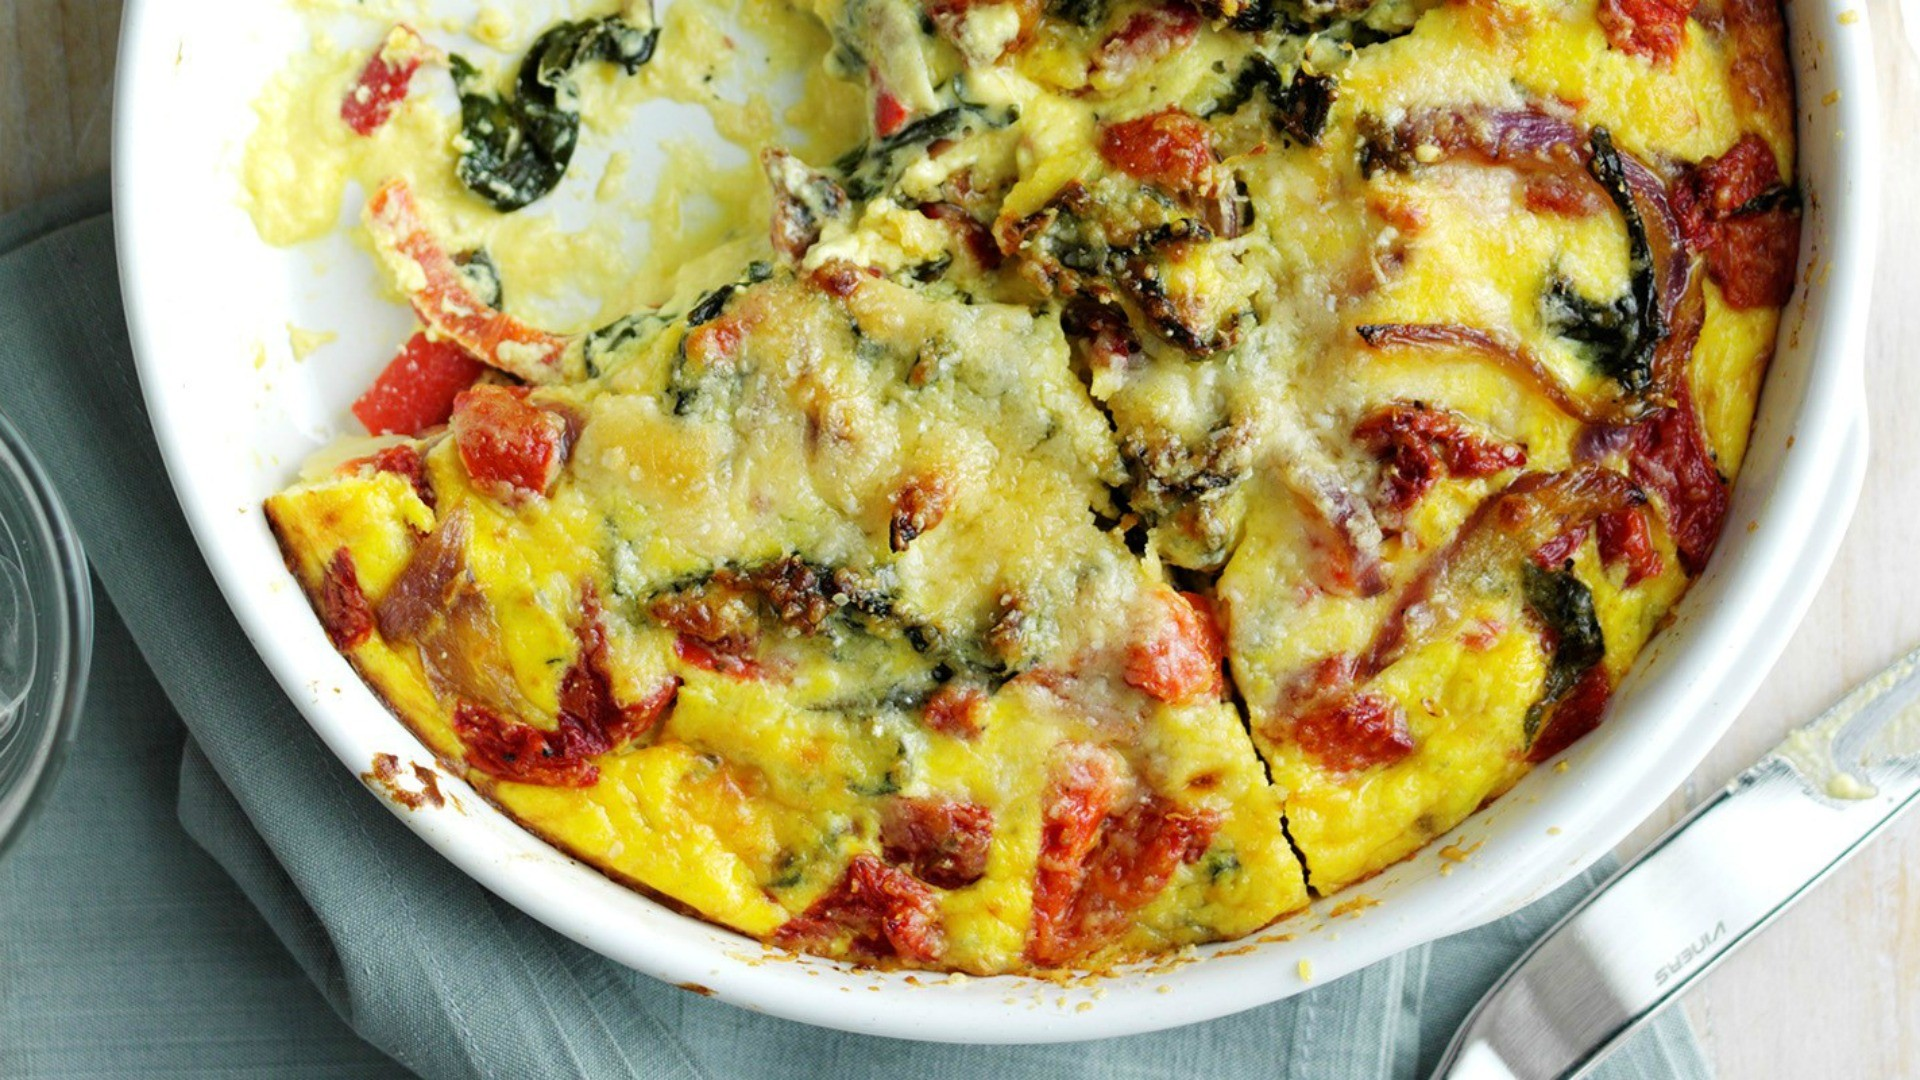 Packing in protein and iron, fritatas are also incredibly simple to make